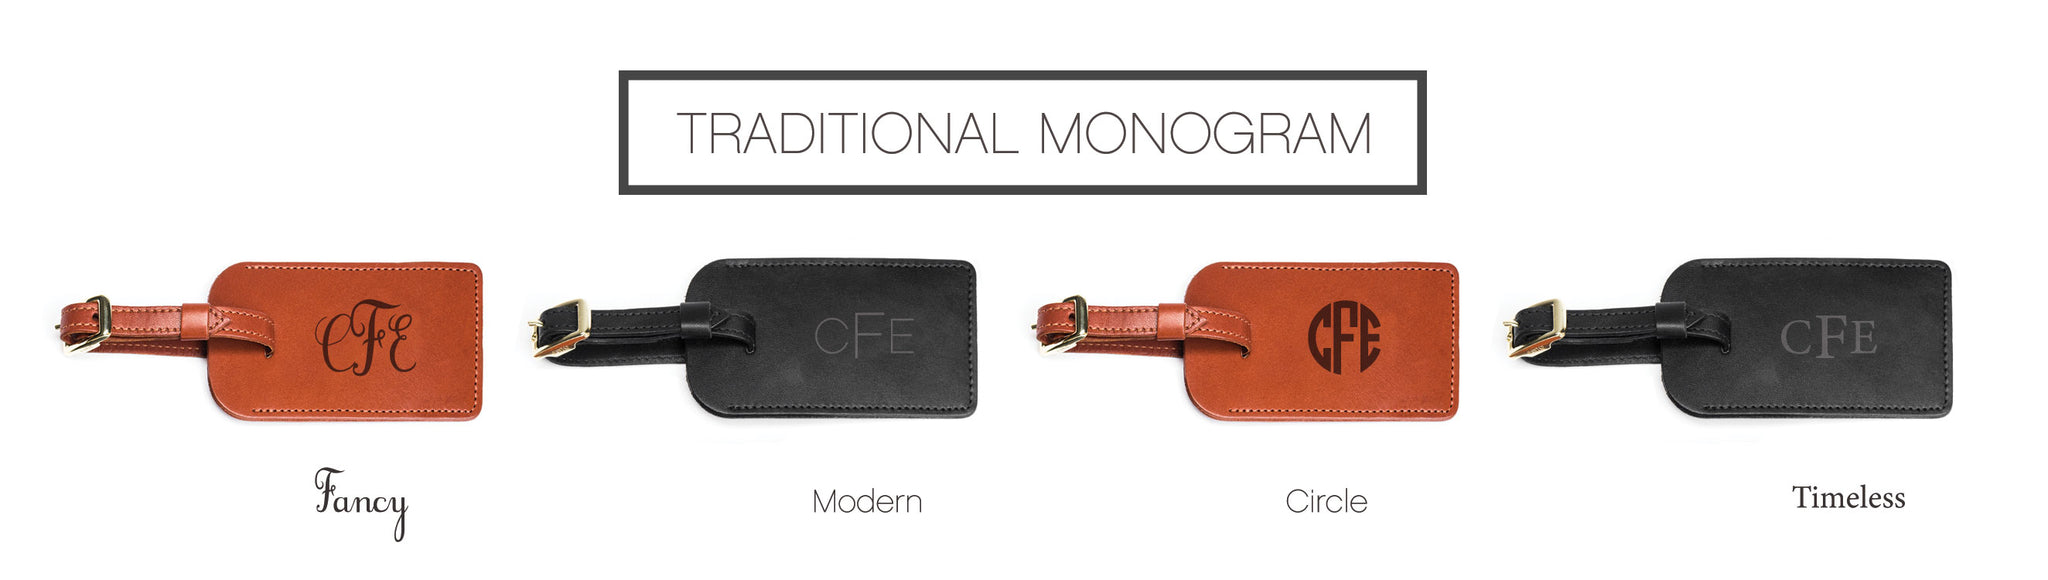 Luggage Tag Monogram Personalization Options